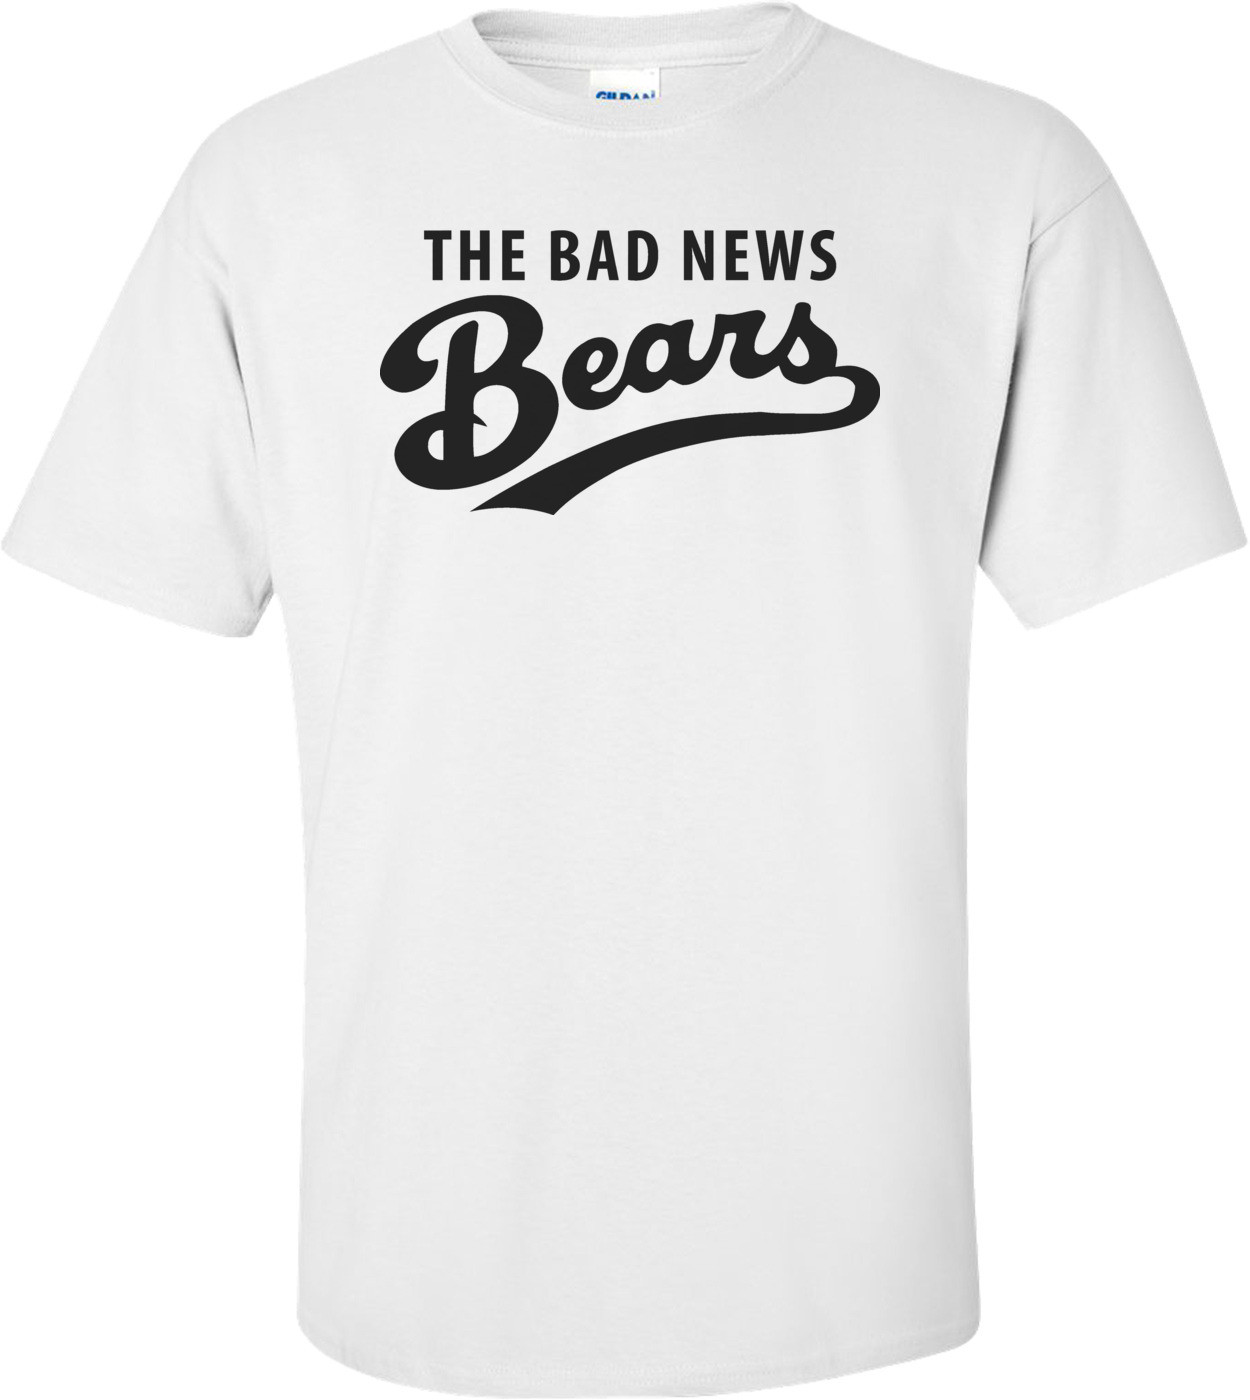 The Bad News Bears T-shirt